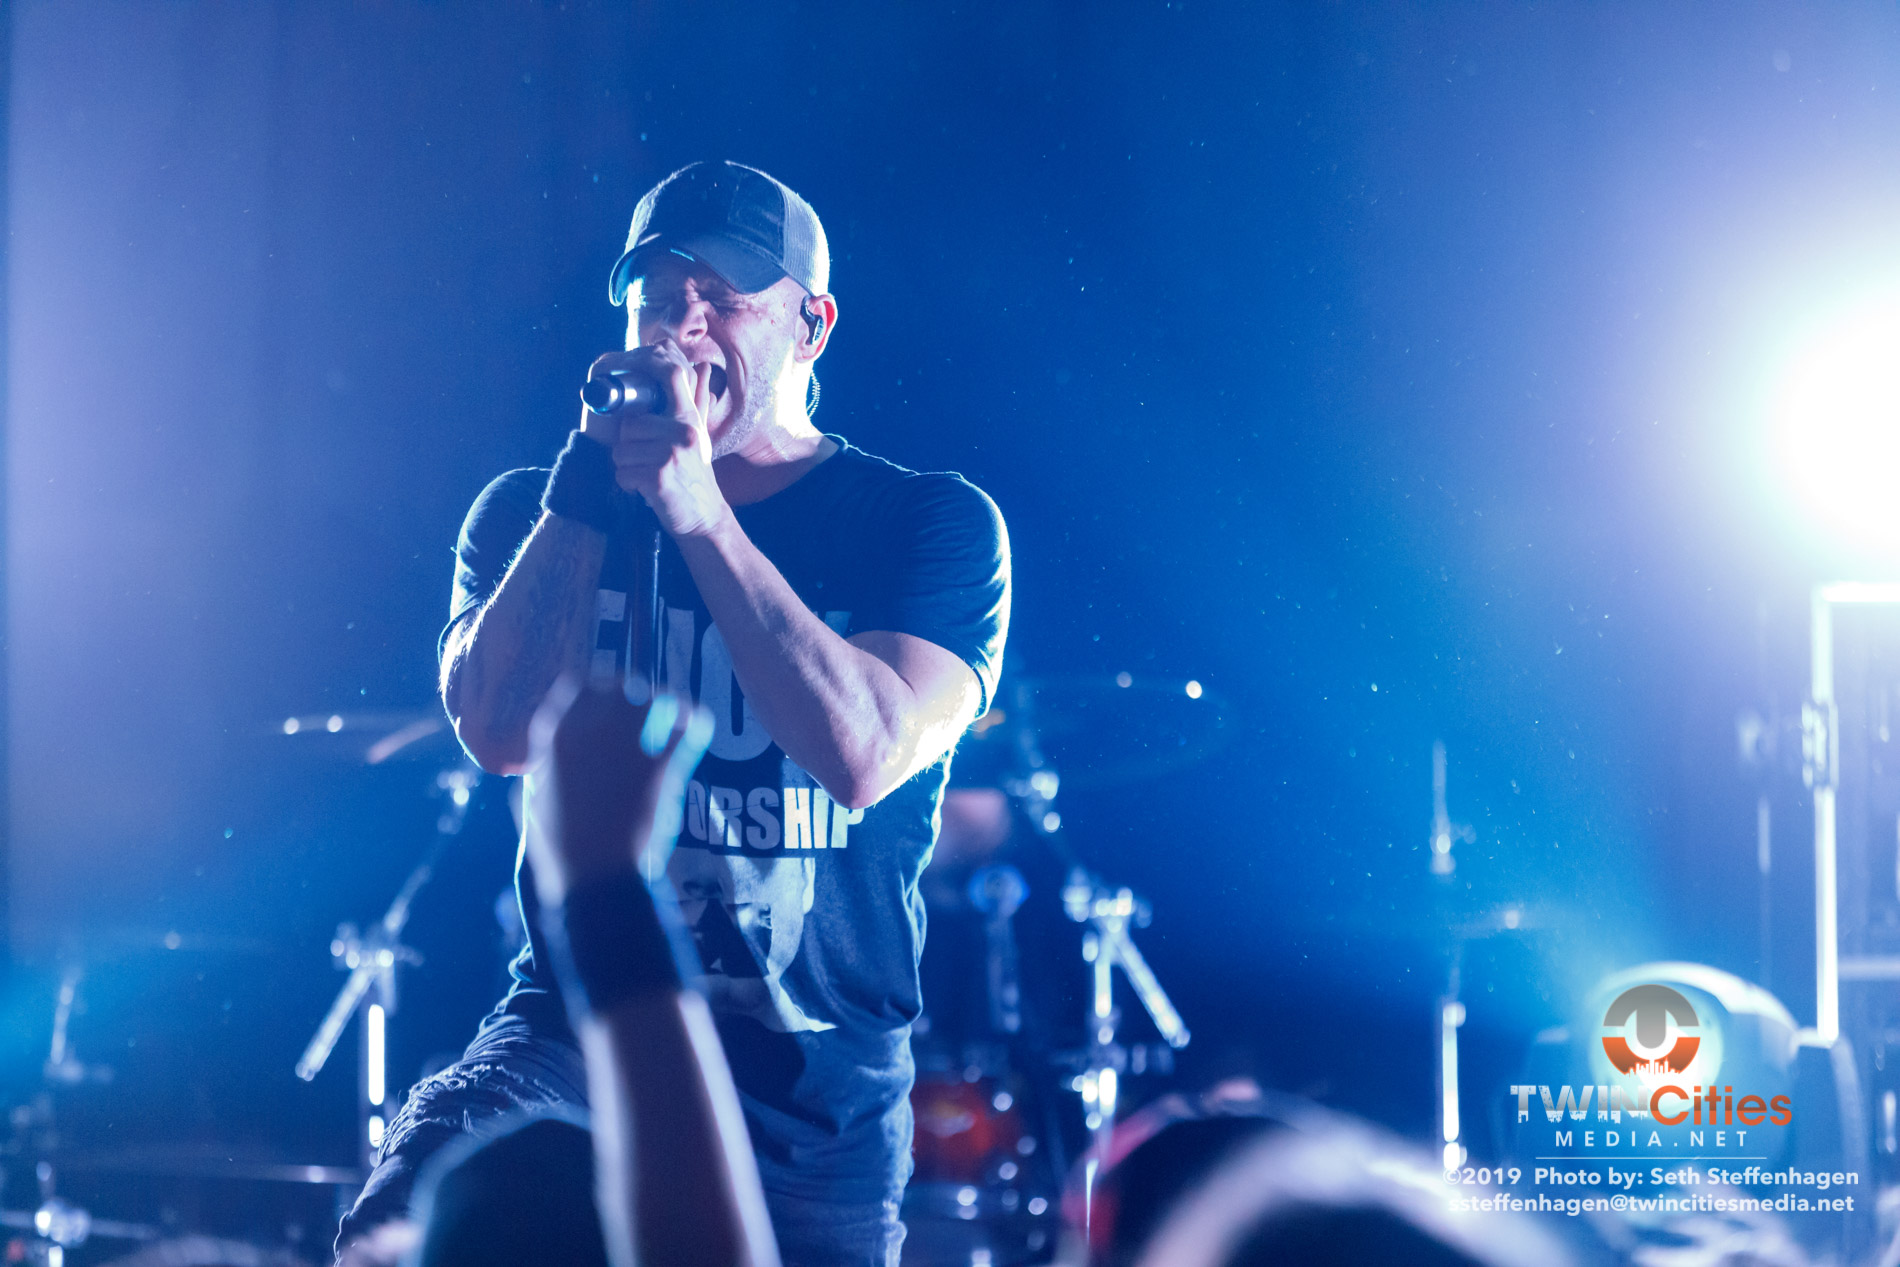 March 12, 2019 - Minneapolis, Minnesota, United States - All That Remains live in concert atThe Cabooze along with Atilla, Escape The Fate and Sleep Signals as the openers.  (Photo by Seth Steffenhagen/Steffenhagen Photography)